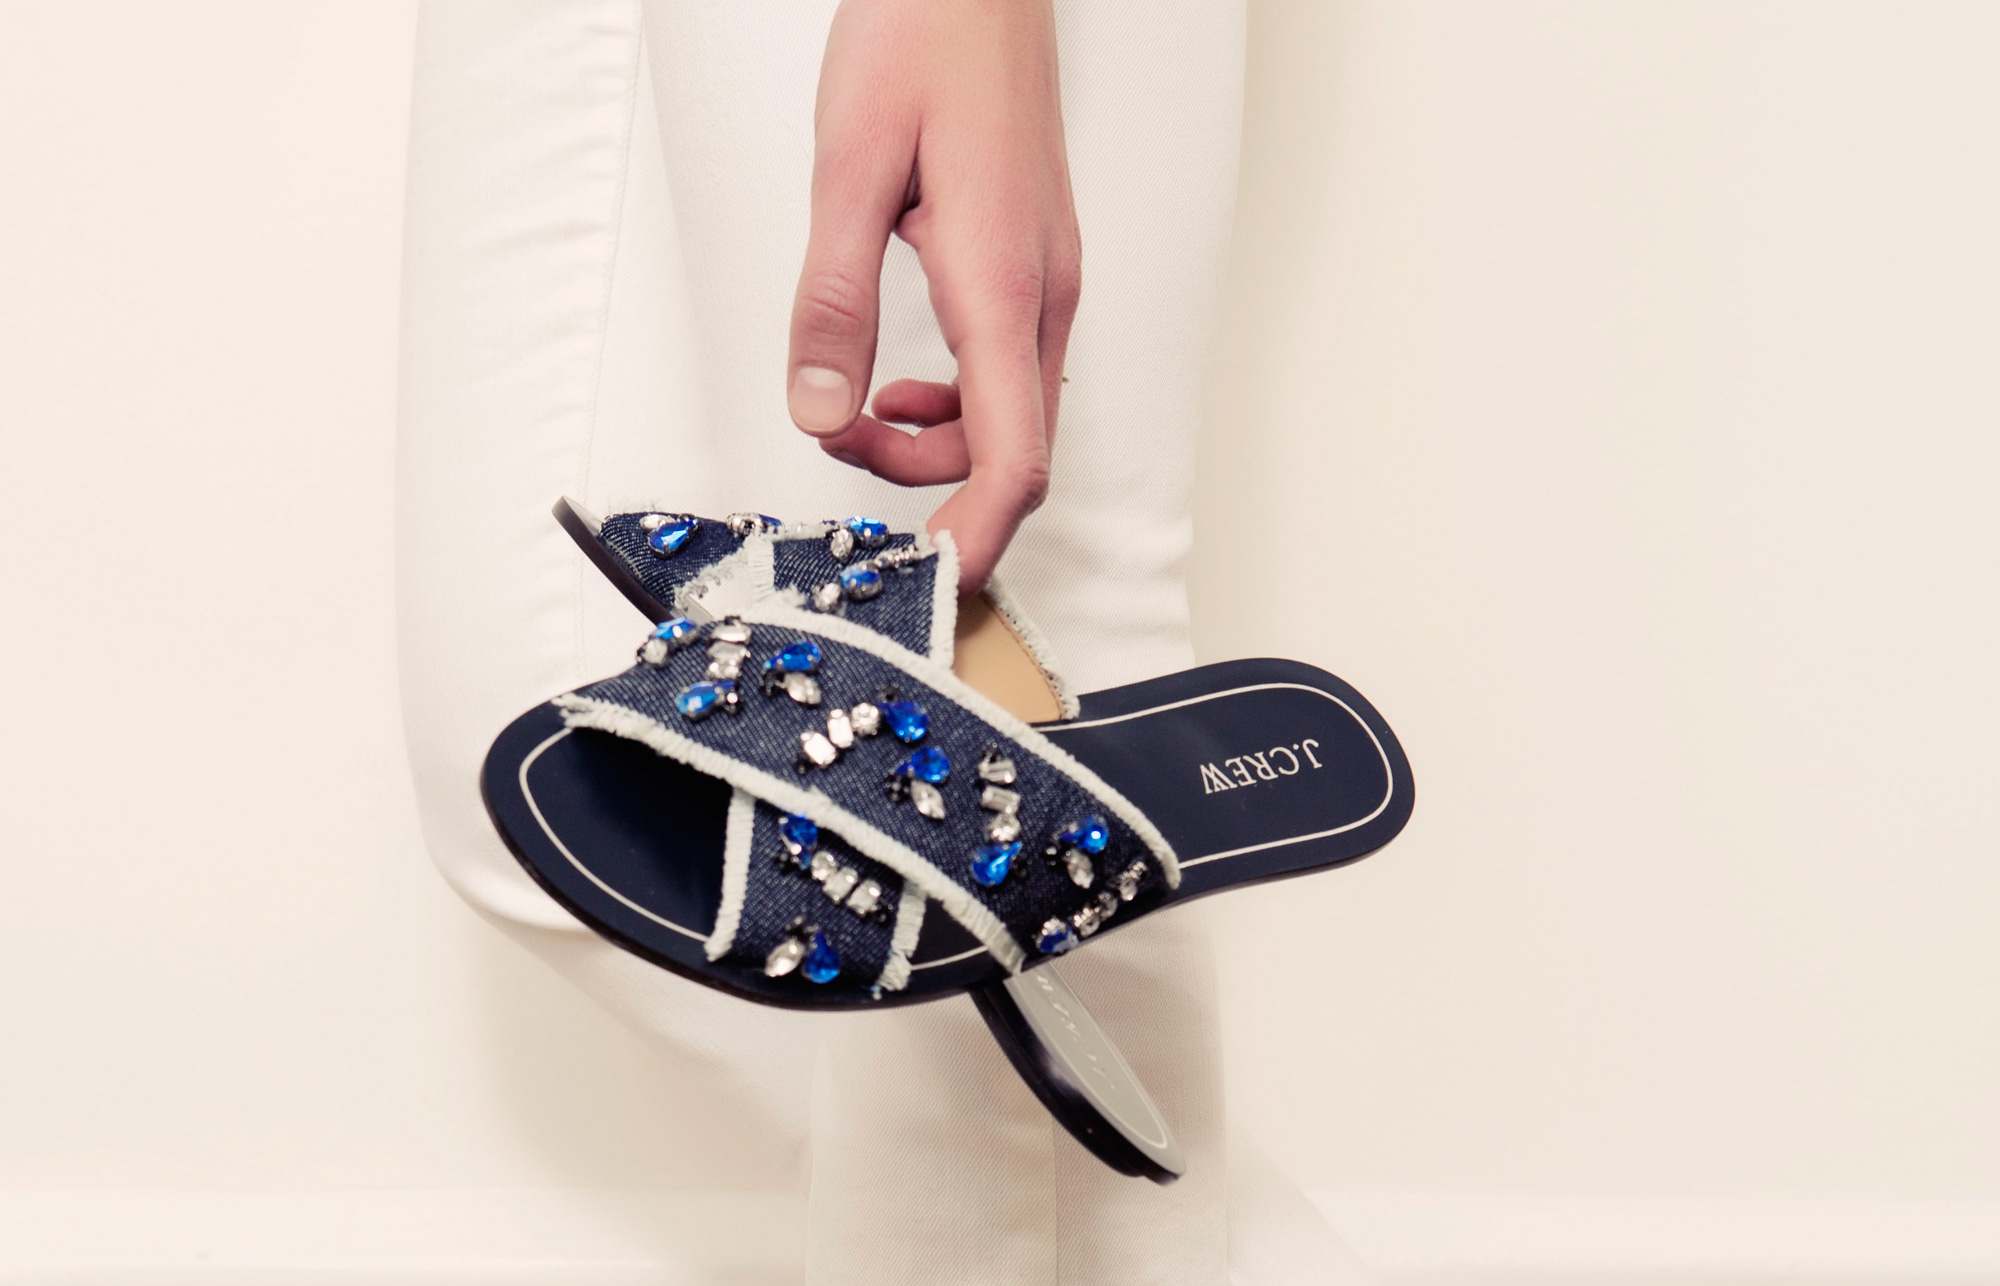 fe412e748 Jean of the Week: J.Crew's Cyprus Sandals - Jean STORIES